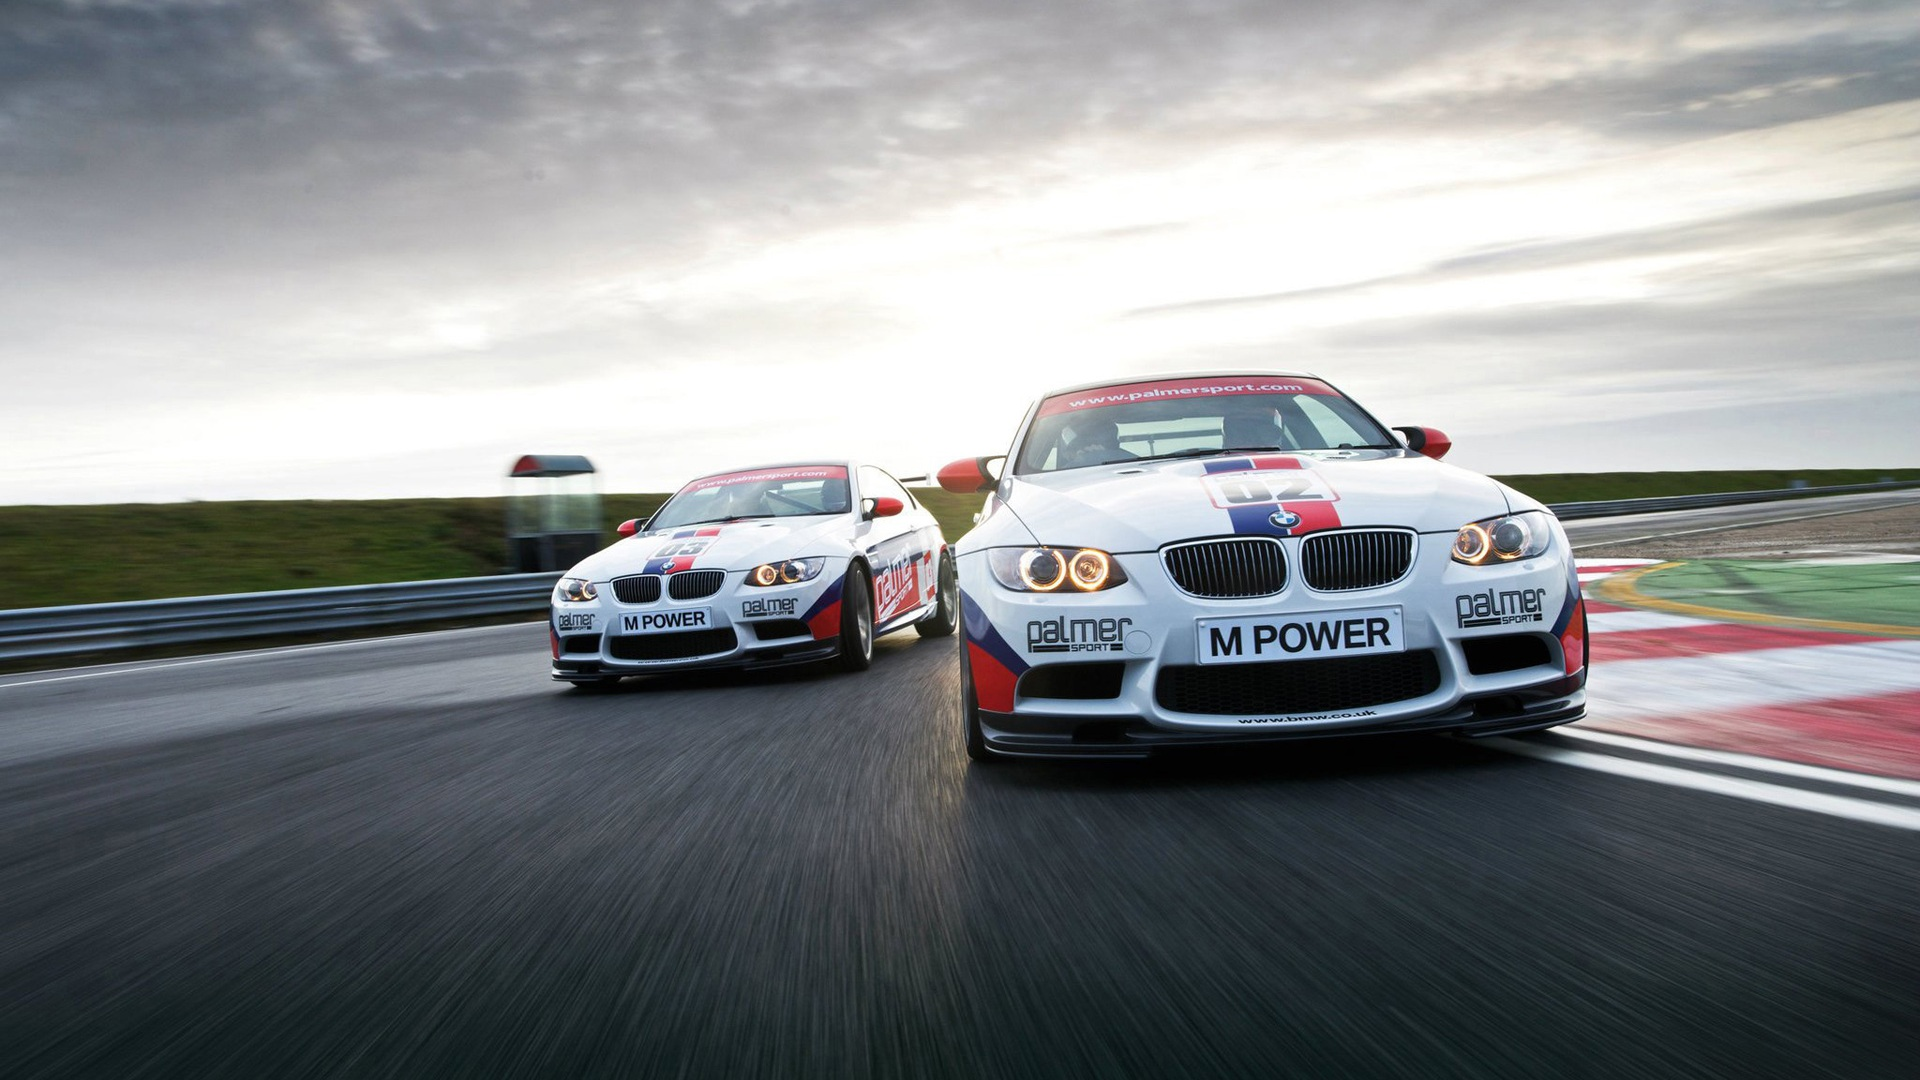 Wallpaper Bmw M3 E92 Sports Car In Racing 1920x1200 Hd Picture Image